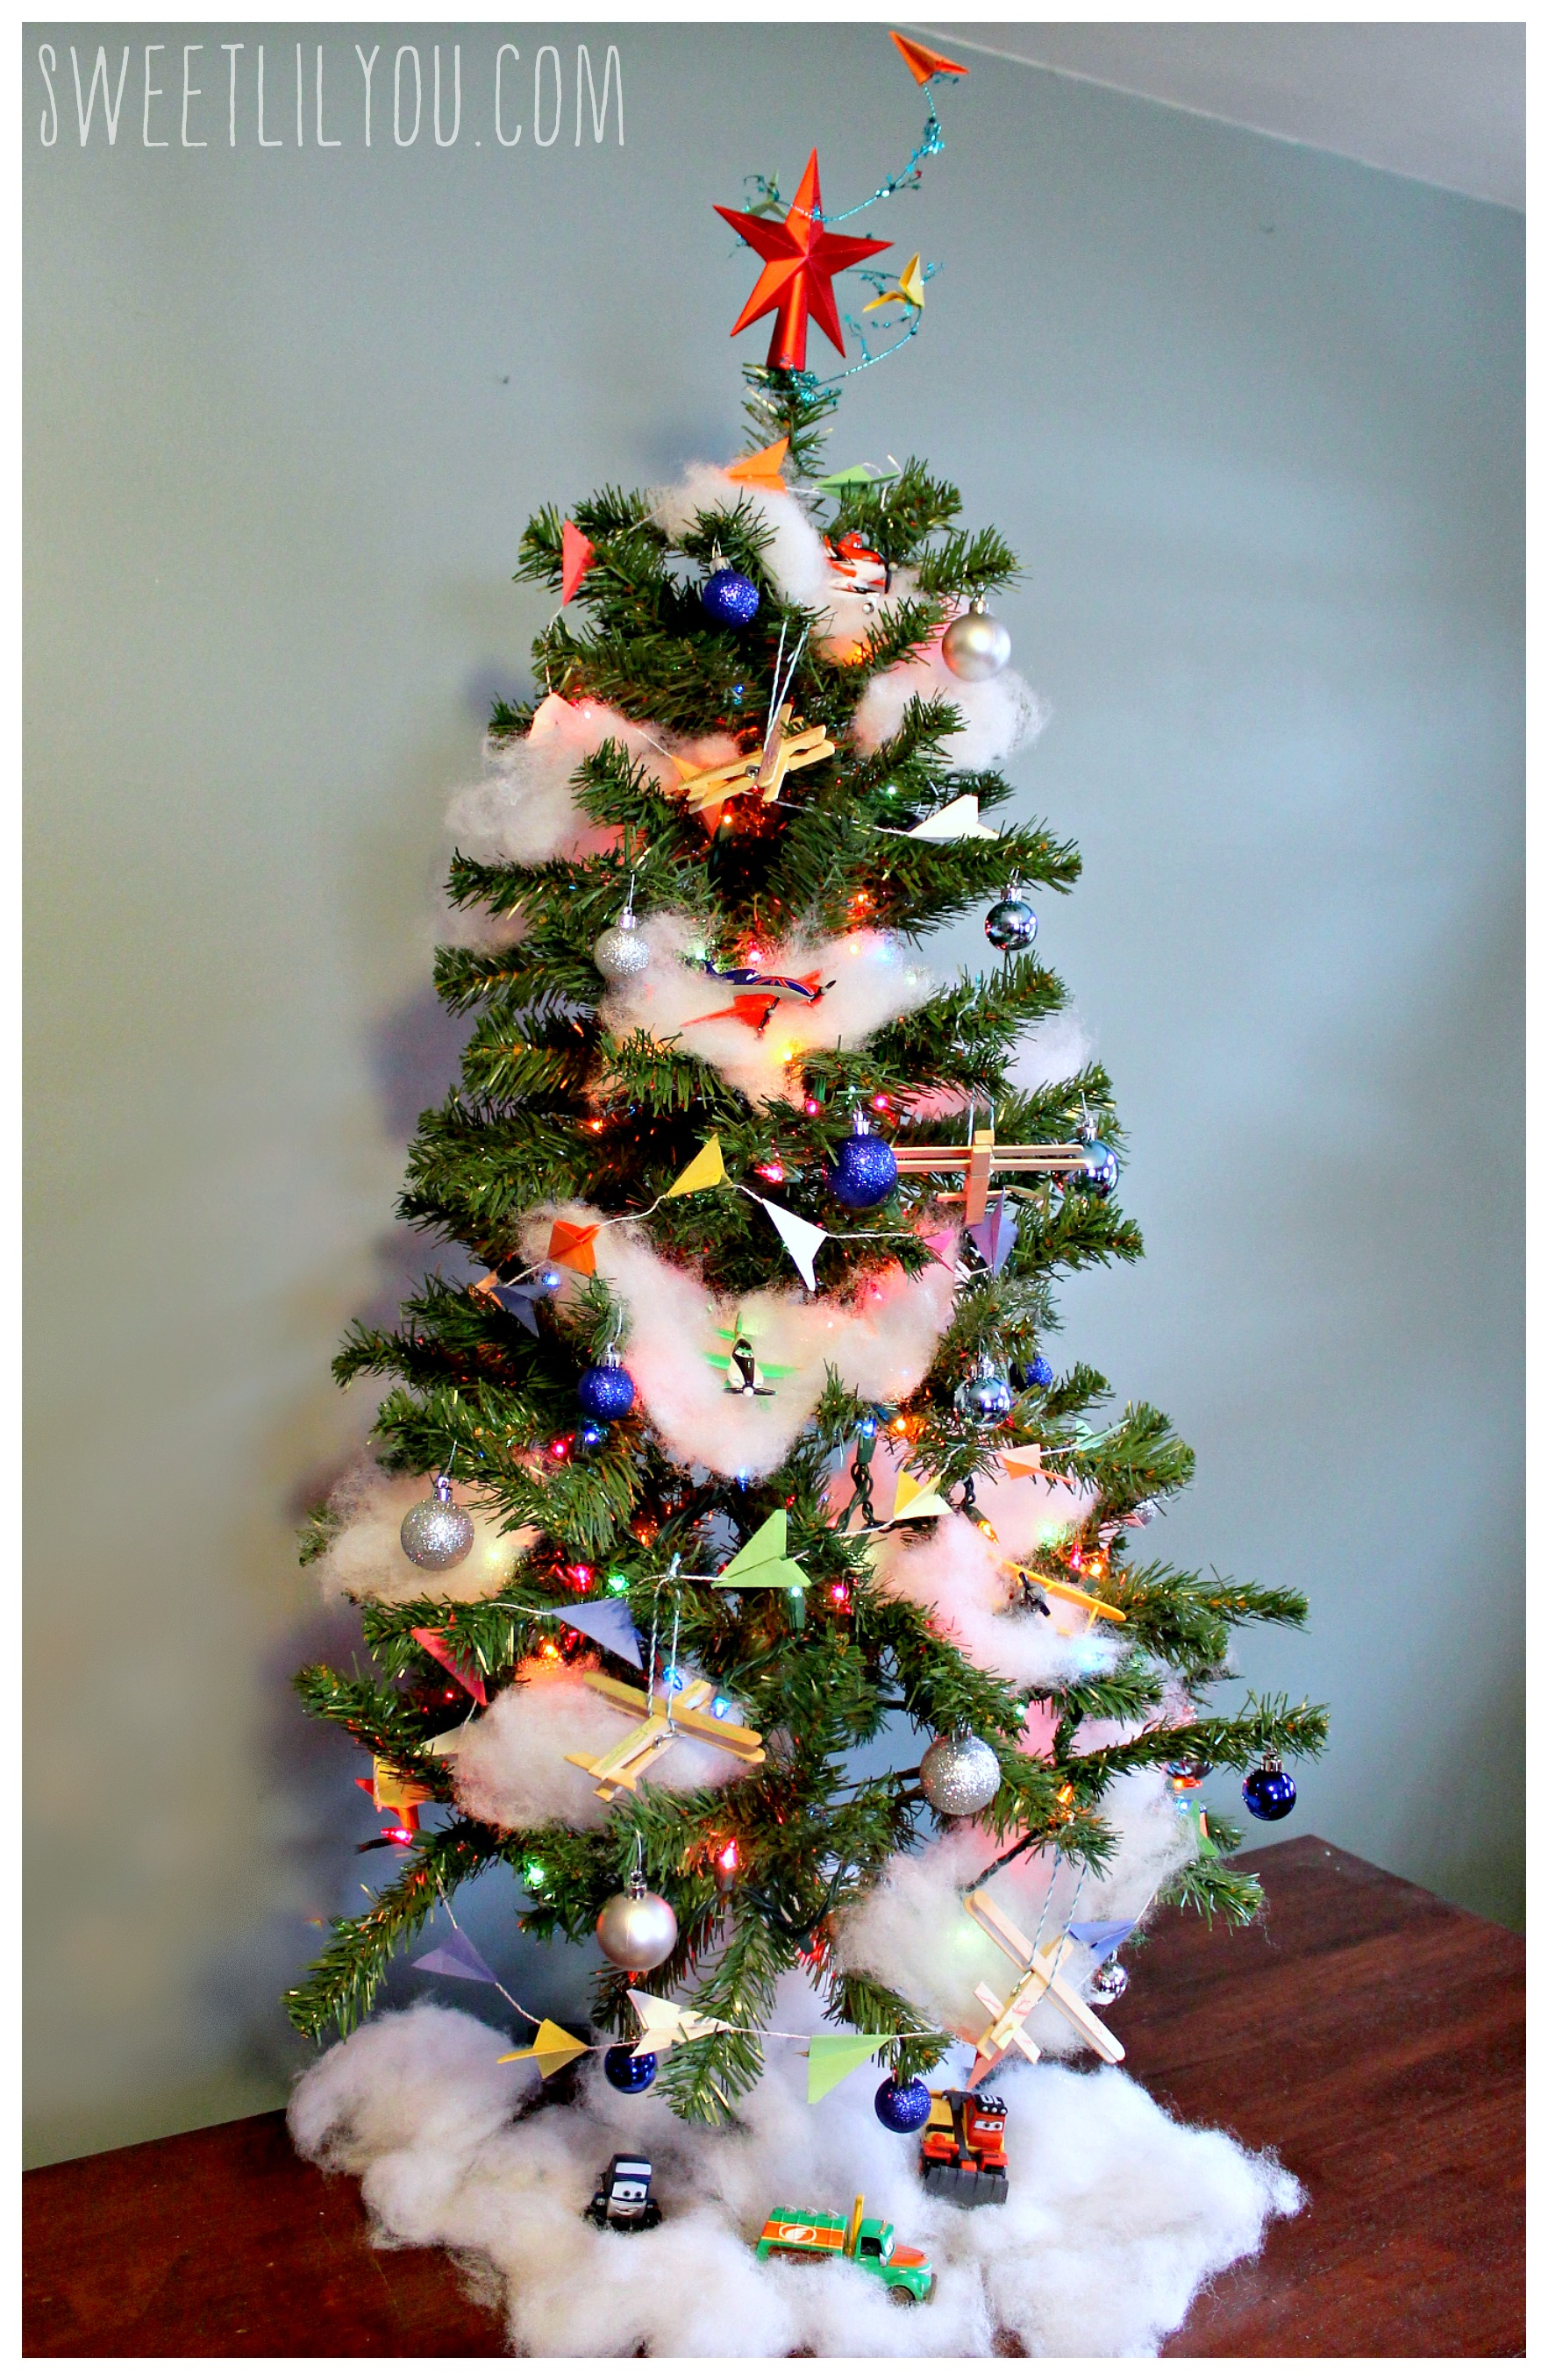 Disney planes themed christmas tree planestotherescue